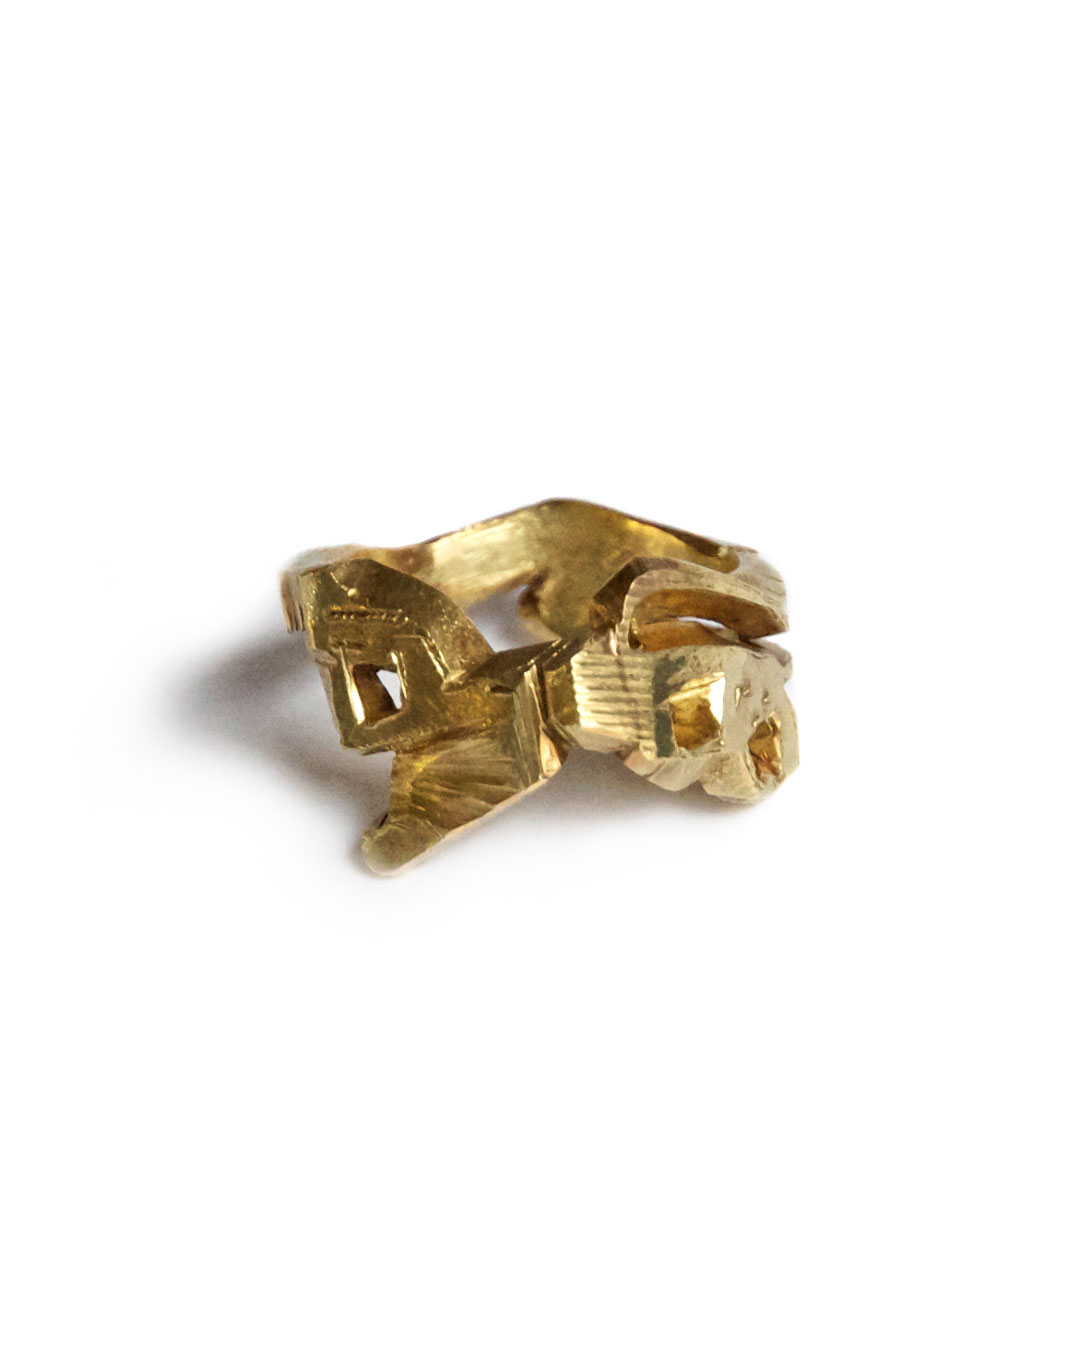 Rudolf Kocéa, PF, 2005, ring; 14ct gold, 22 x 14 mm, €1710